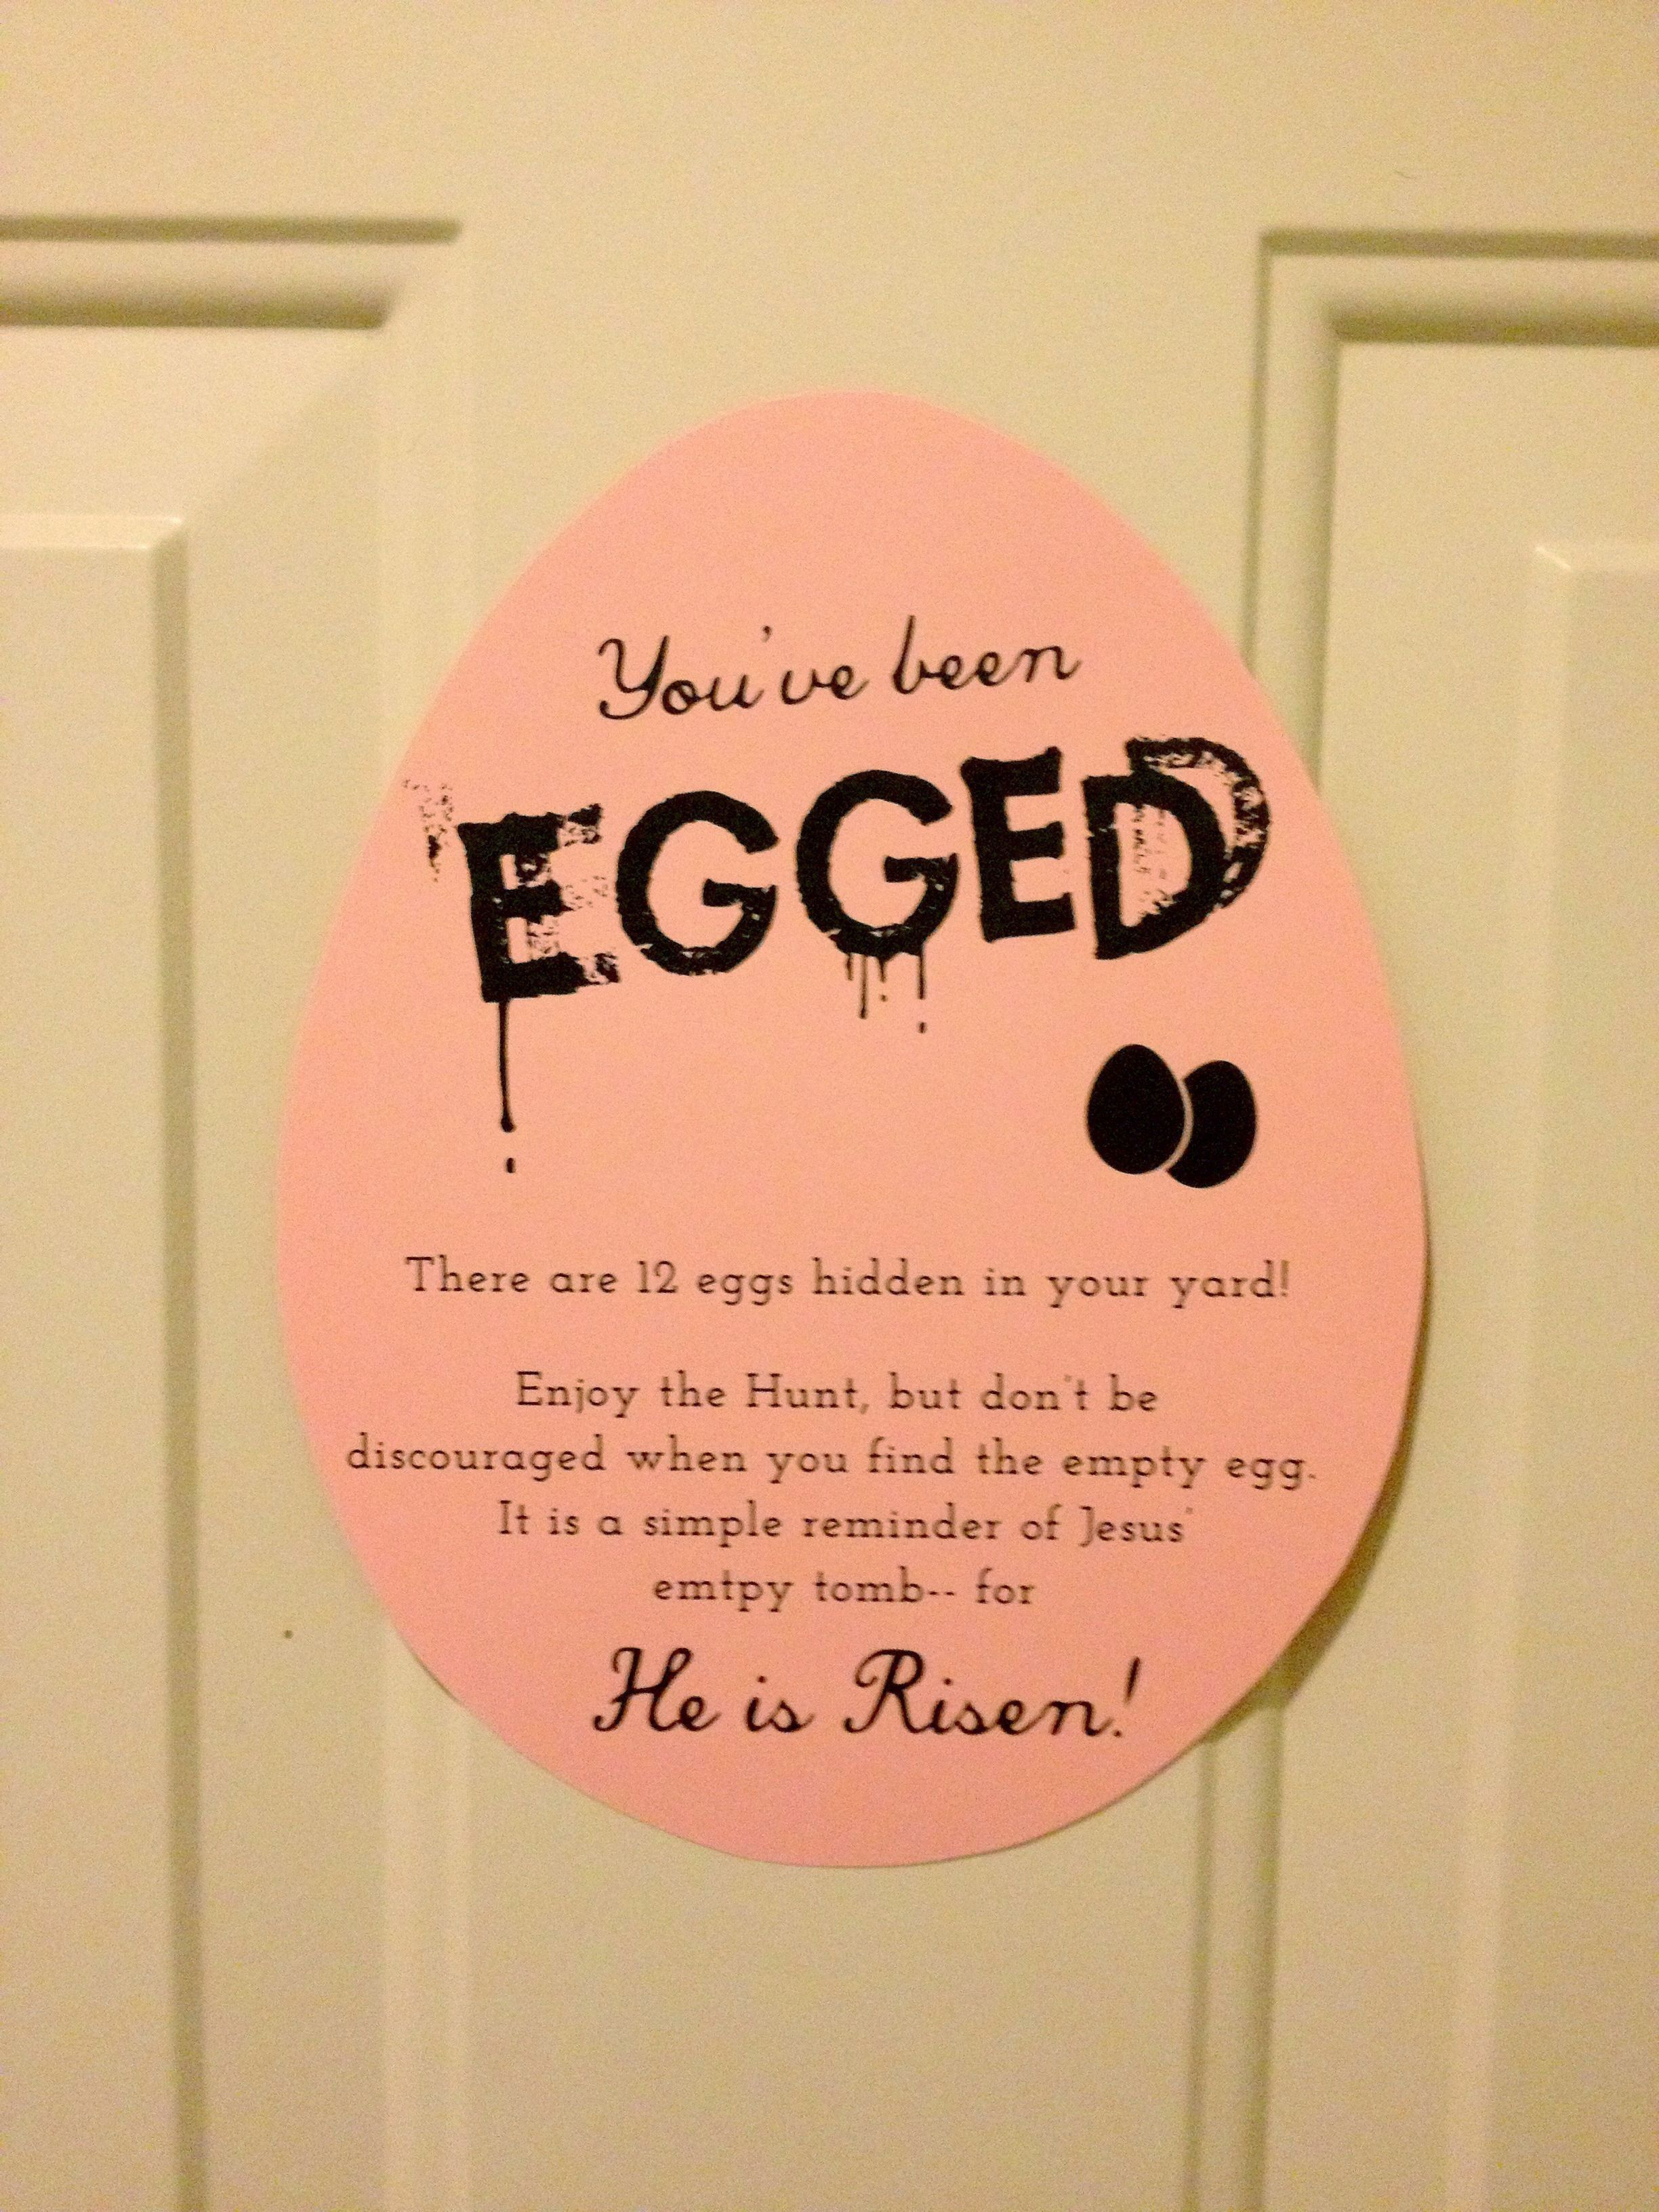 Youve been egged a free printable easter egg and holidays easter crafts negle Image collections